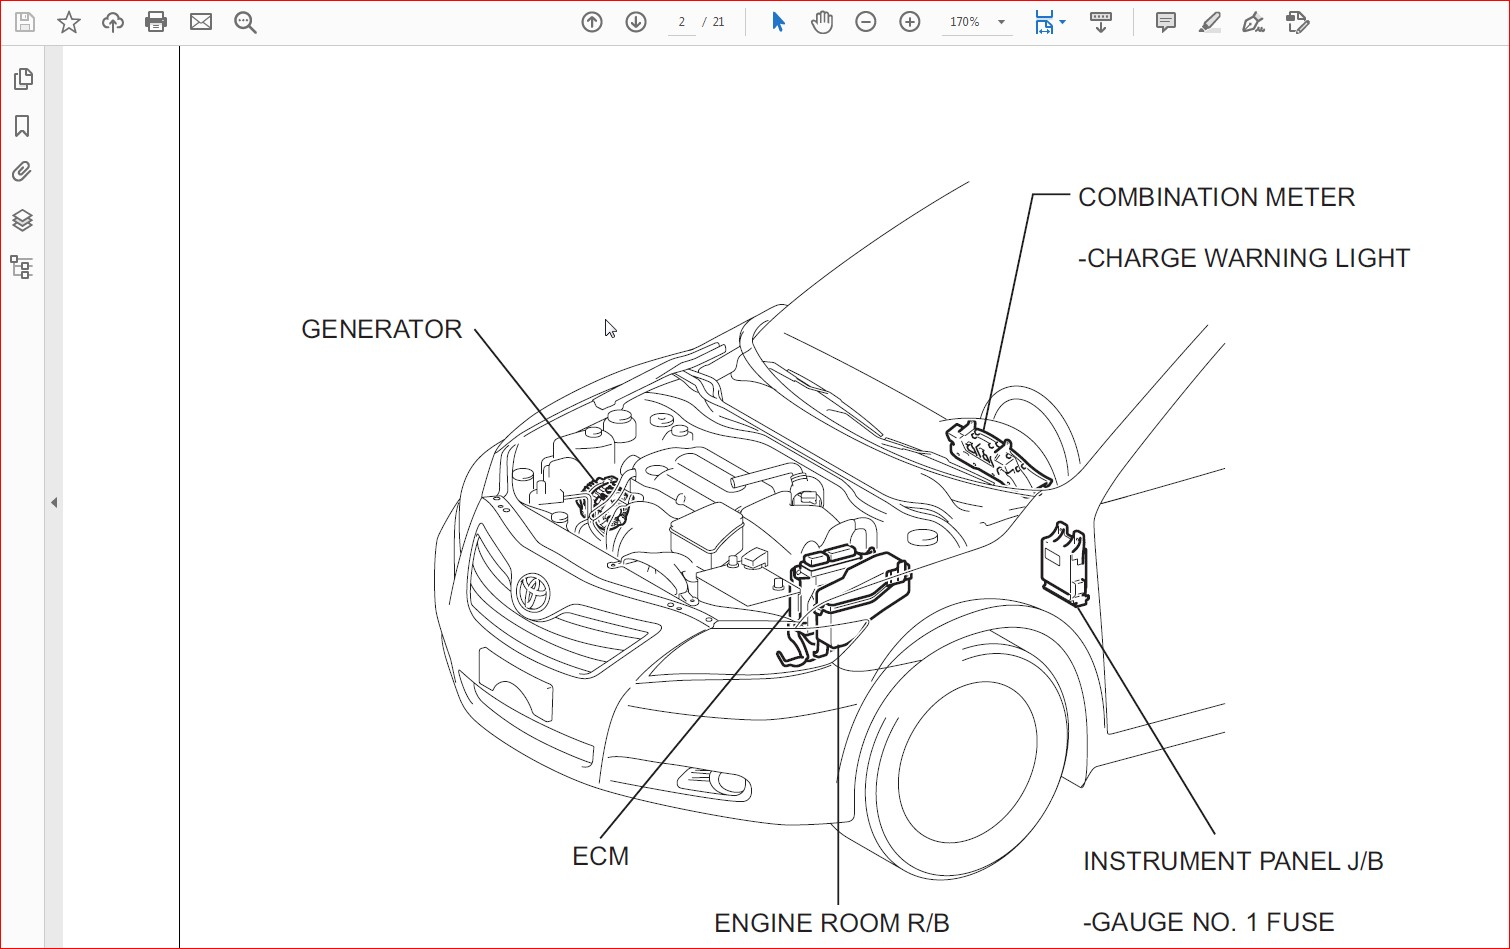 Toyota Camry 2007 Complete Service Repair Manual Download